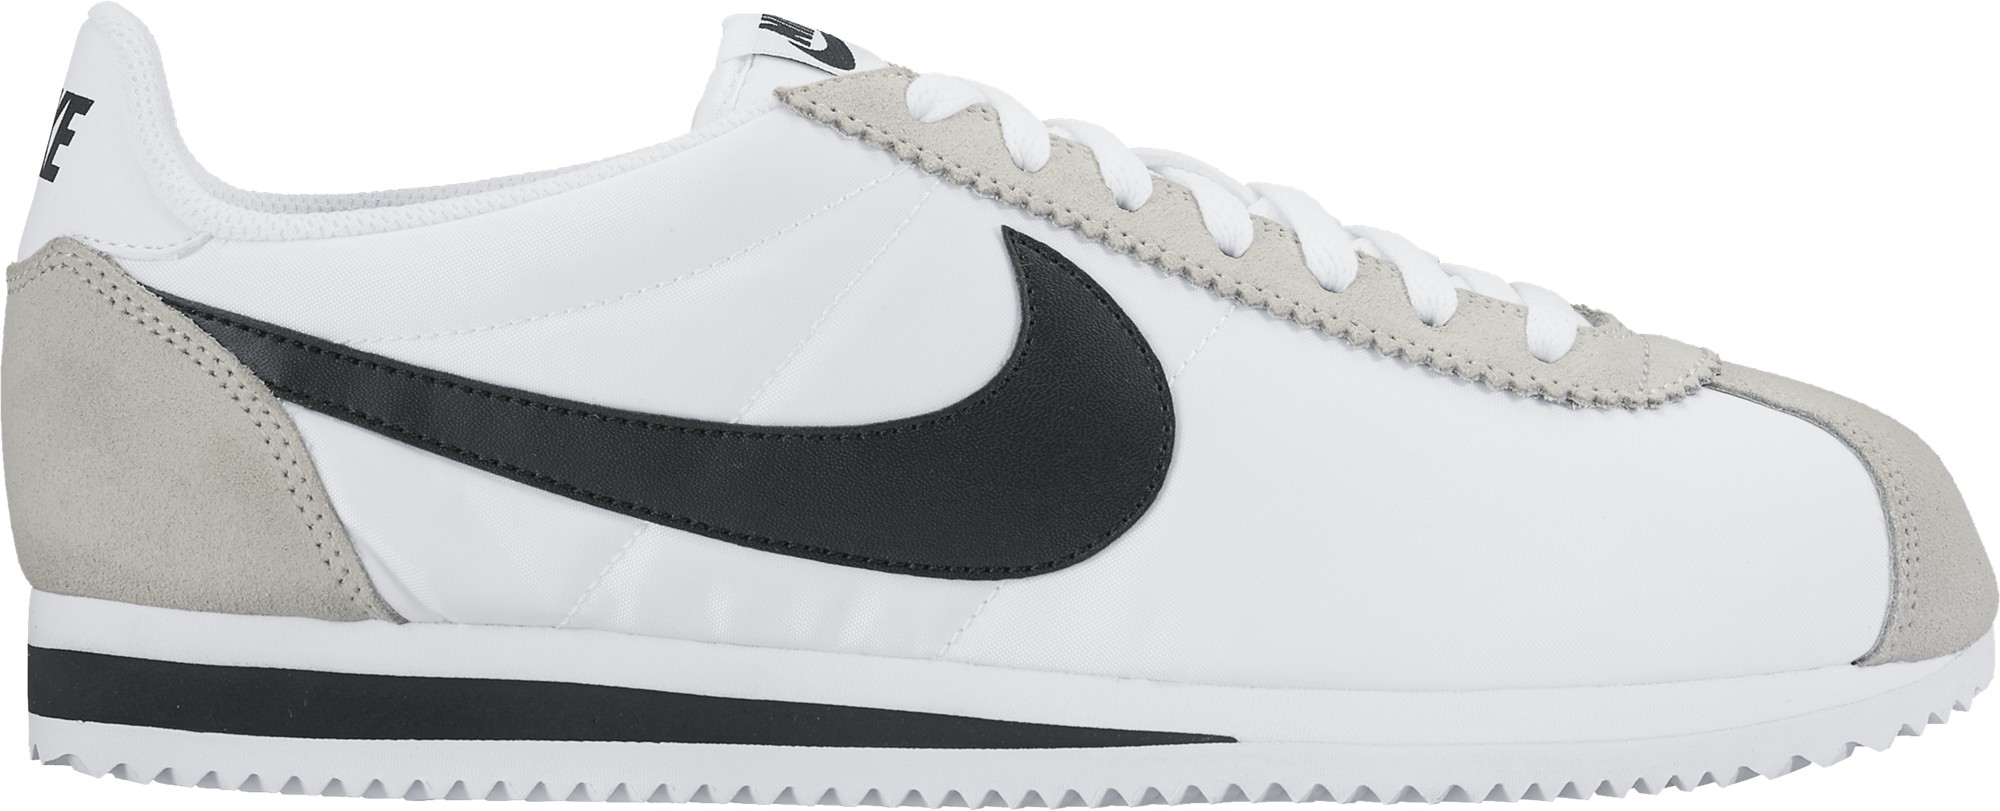 baskets homme nike classic cortez nylon 807472 100. Black Bedroom Furniture Sets. Home Design Ideas